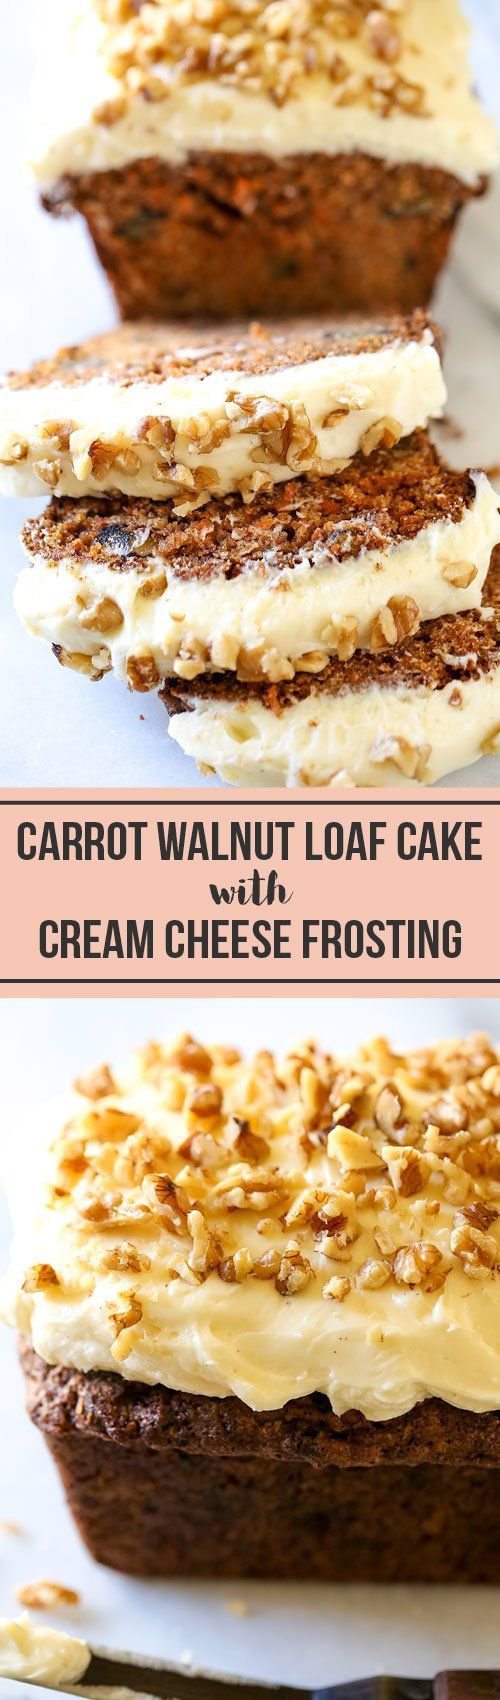 The PERFECT recipe for spring baking! Even carrot haters love this! It's moist, tender, and bursting with flavor. Perfect for gifting, too!